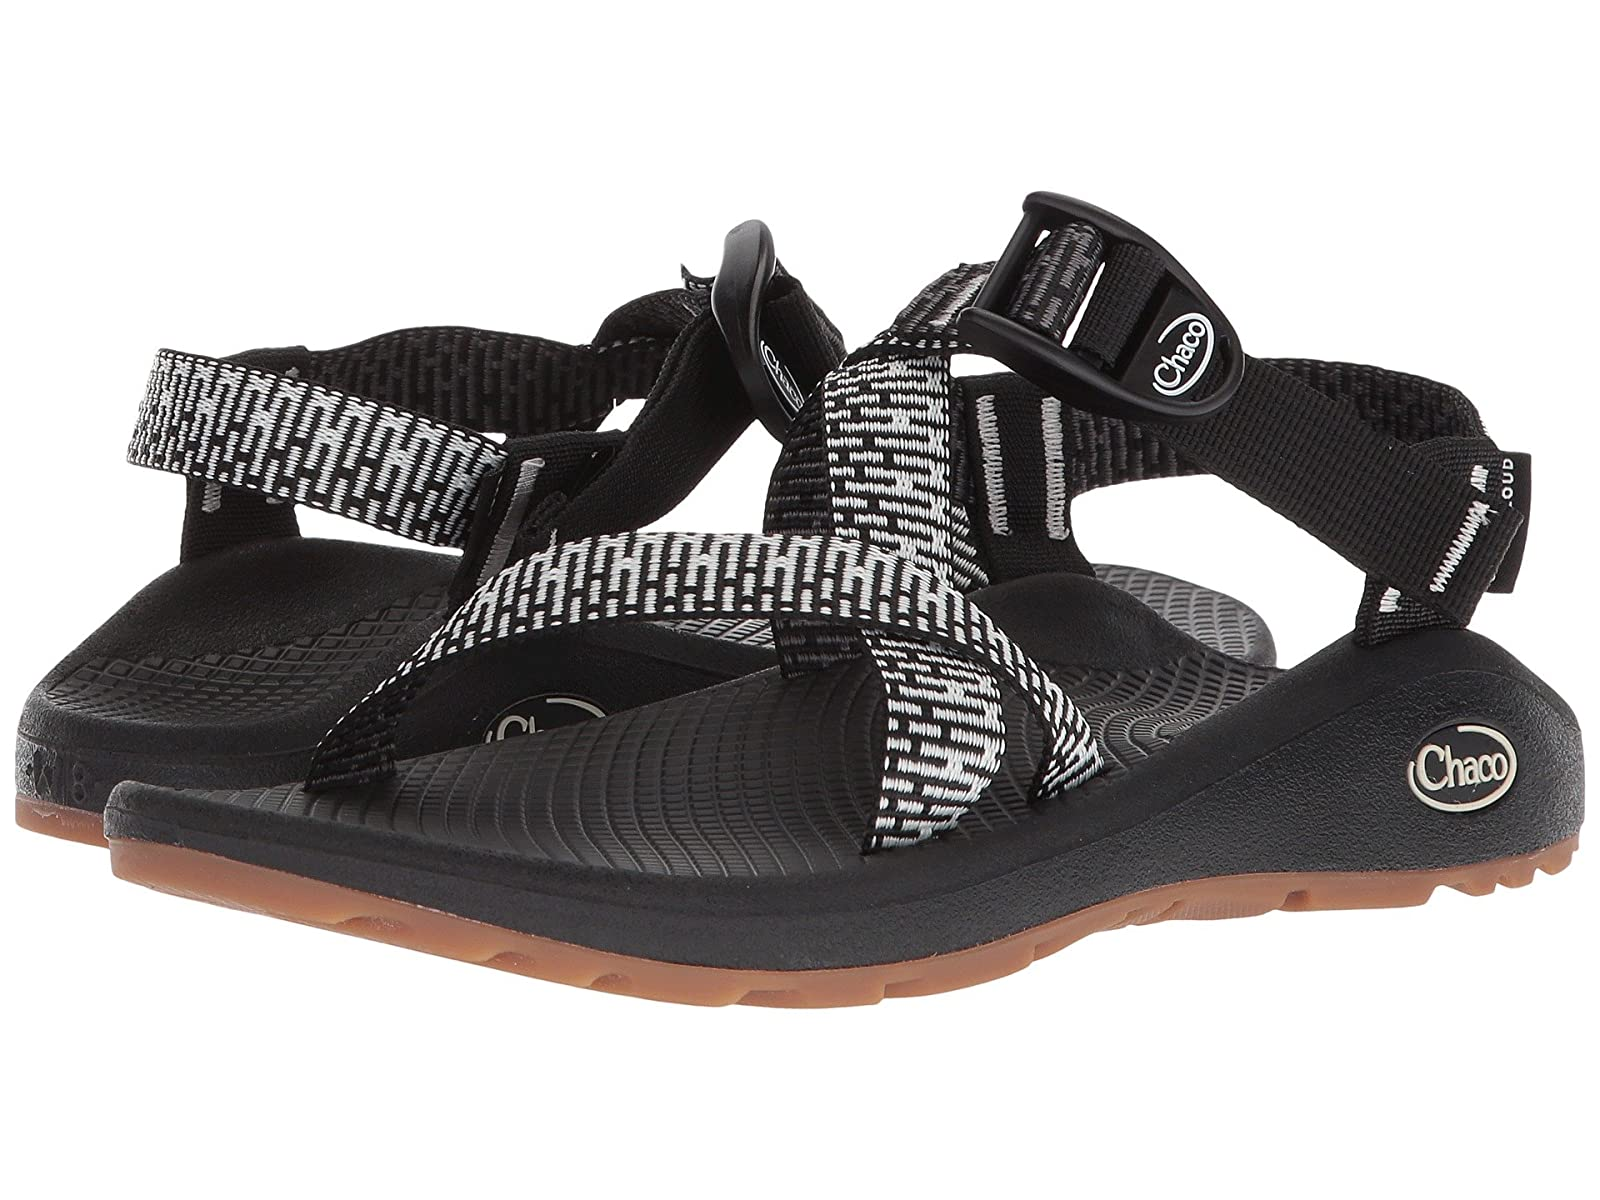 Chaco Z/CloudComfortable and distinctive shoes